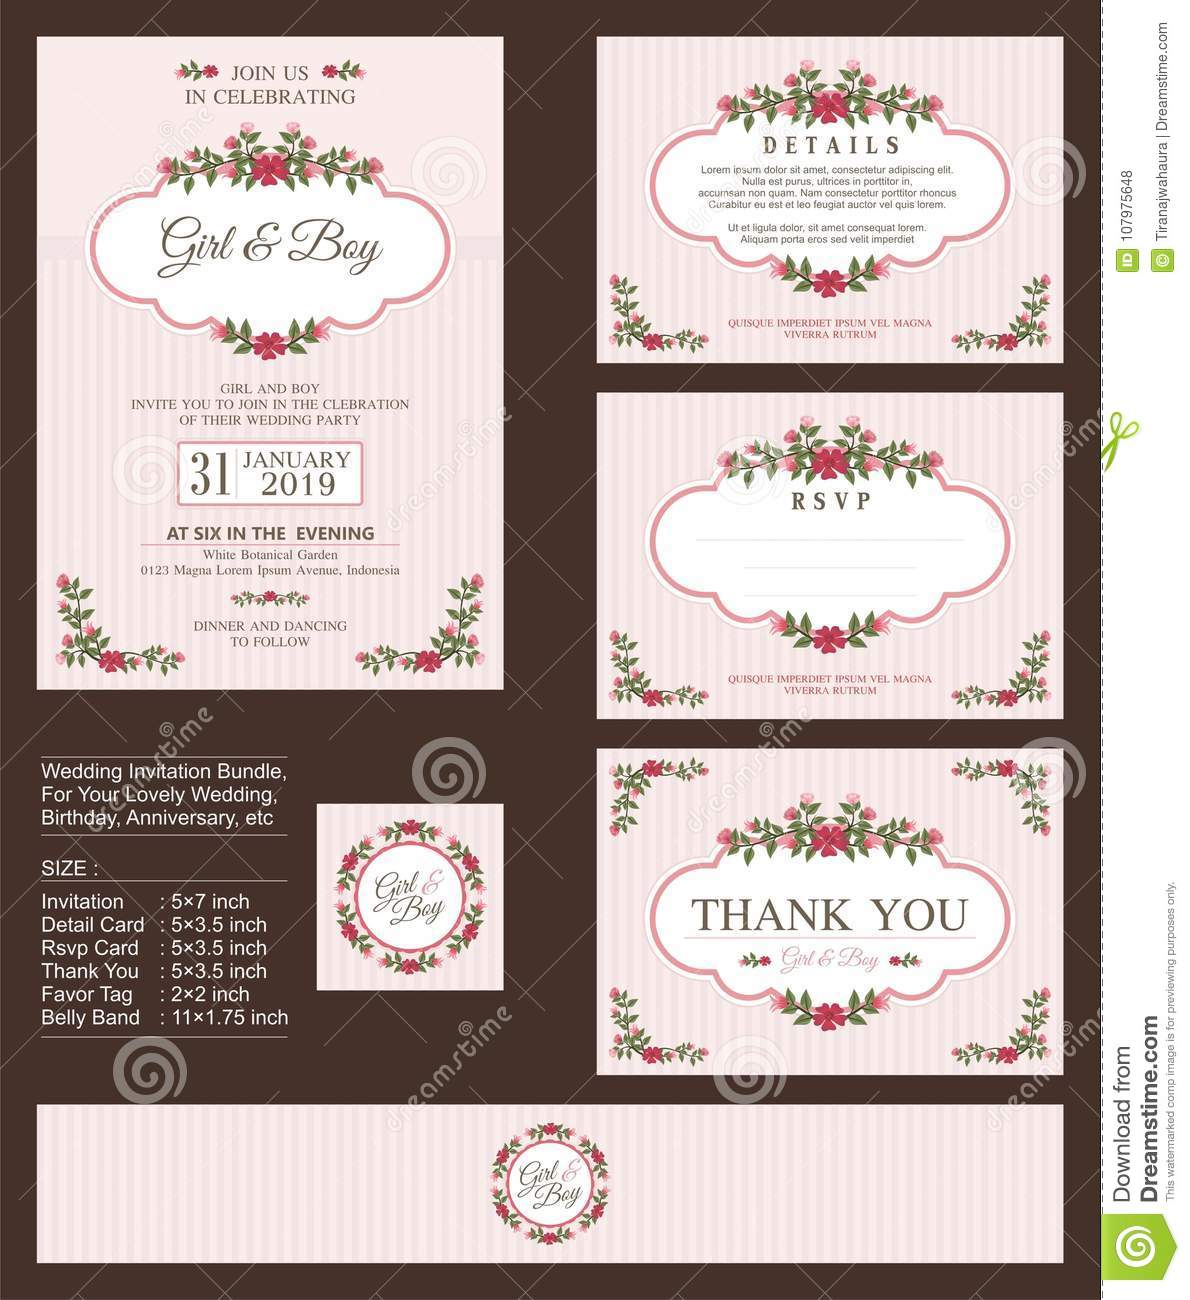 wedding invitation with floral bouquets and wreath design stock